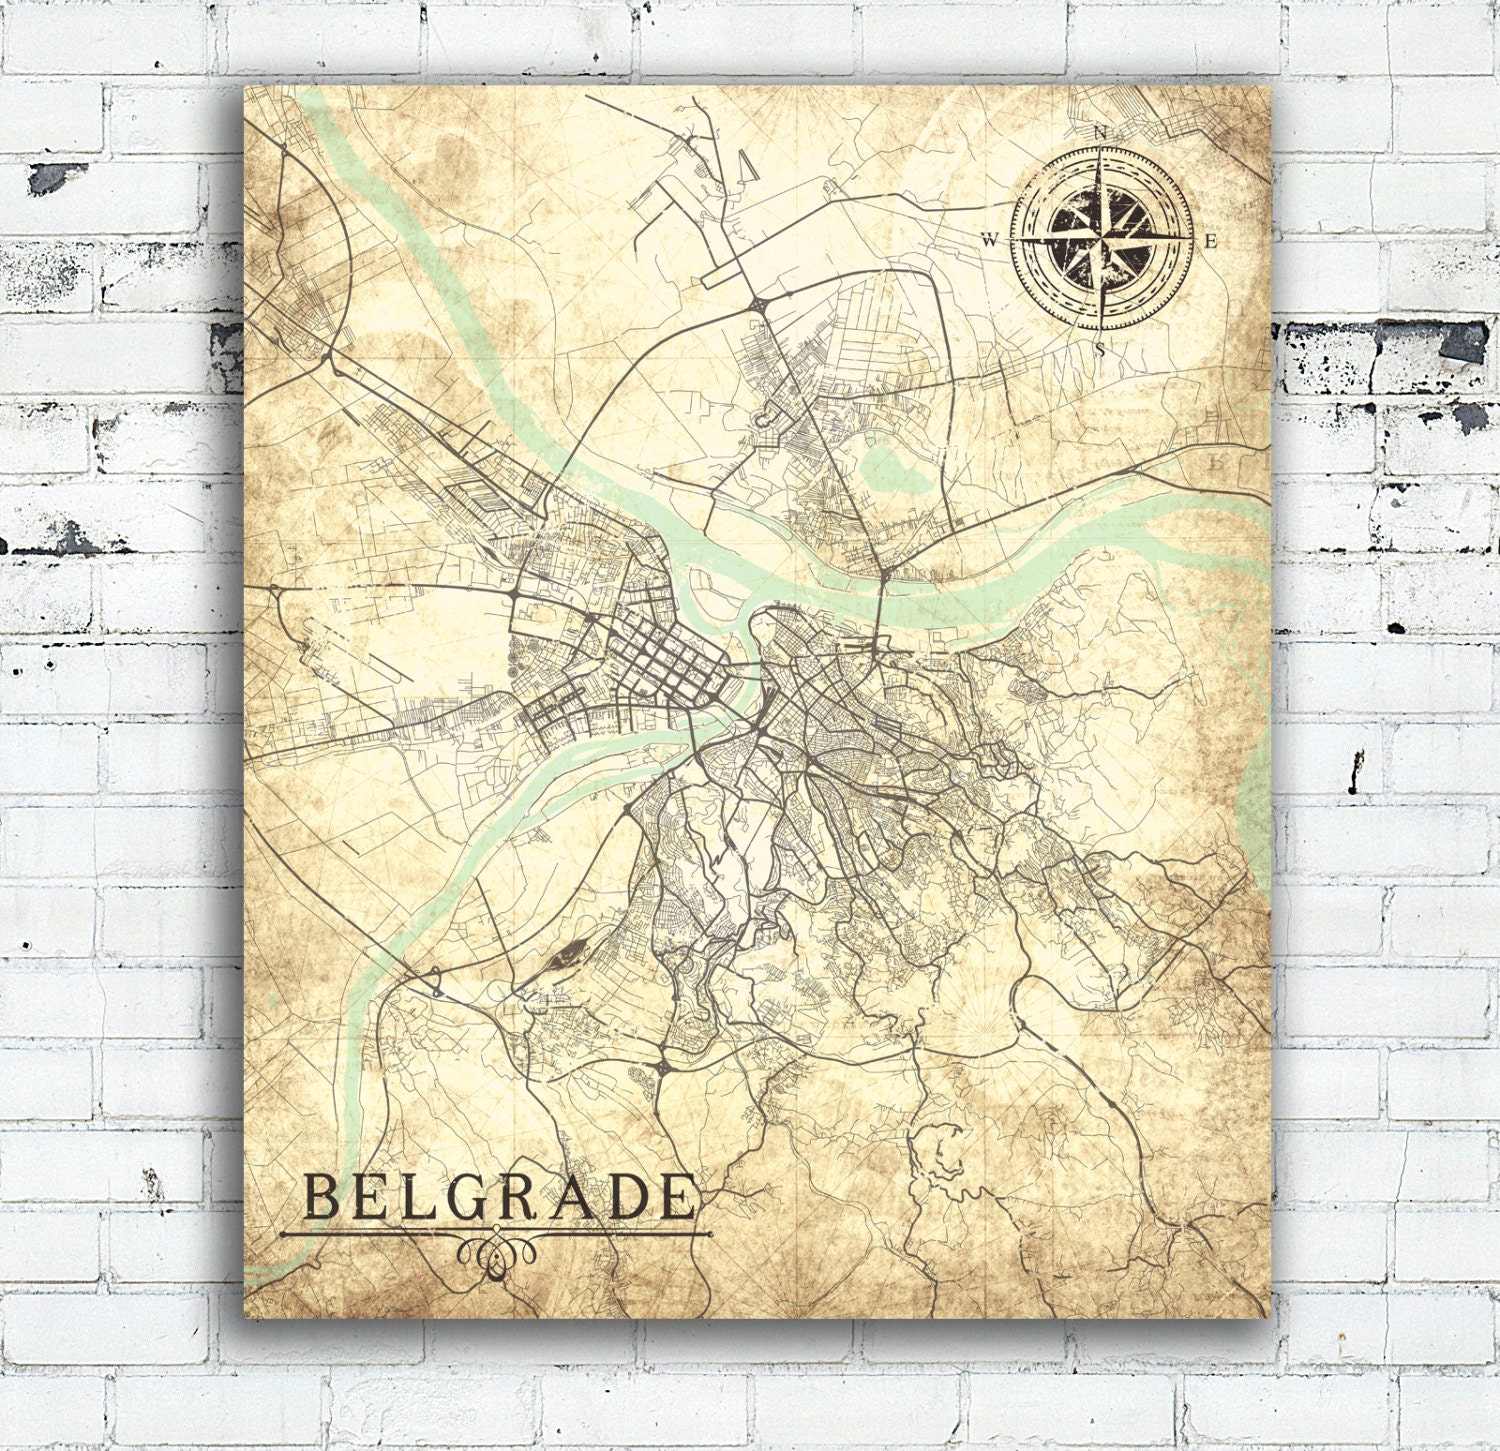 Belgrade Canvas Print Serbia Vintage Map Belgrade Serbia City Plan